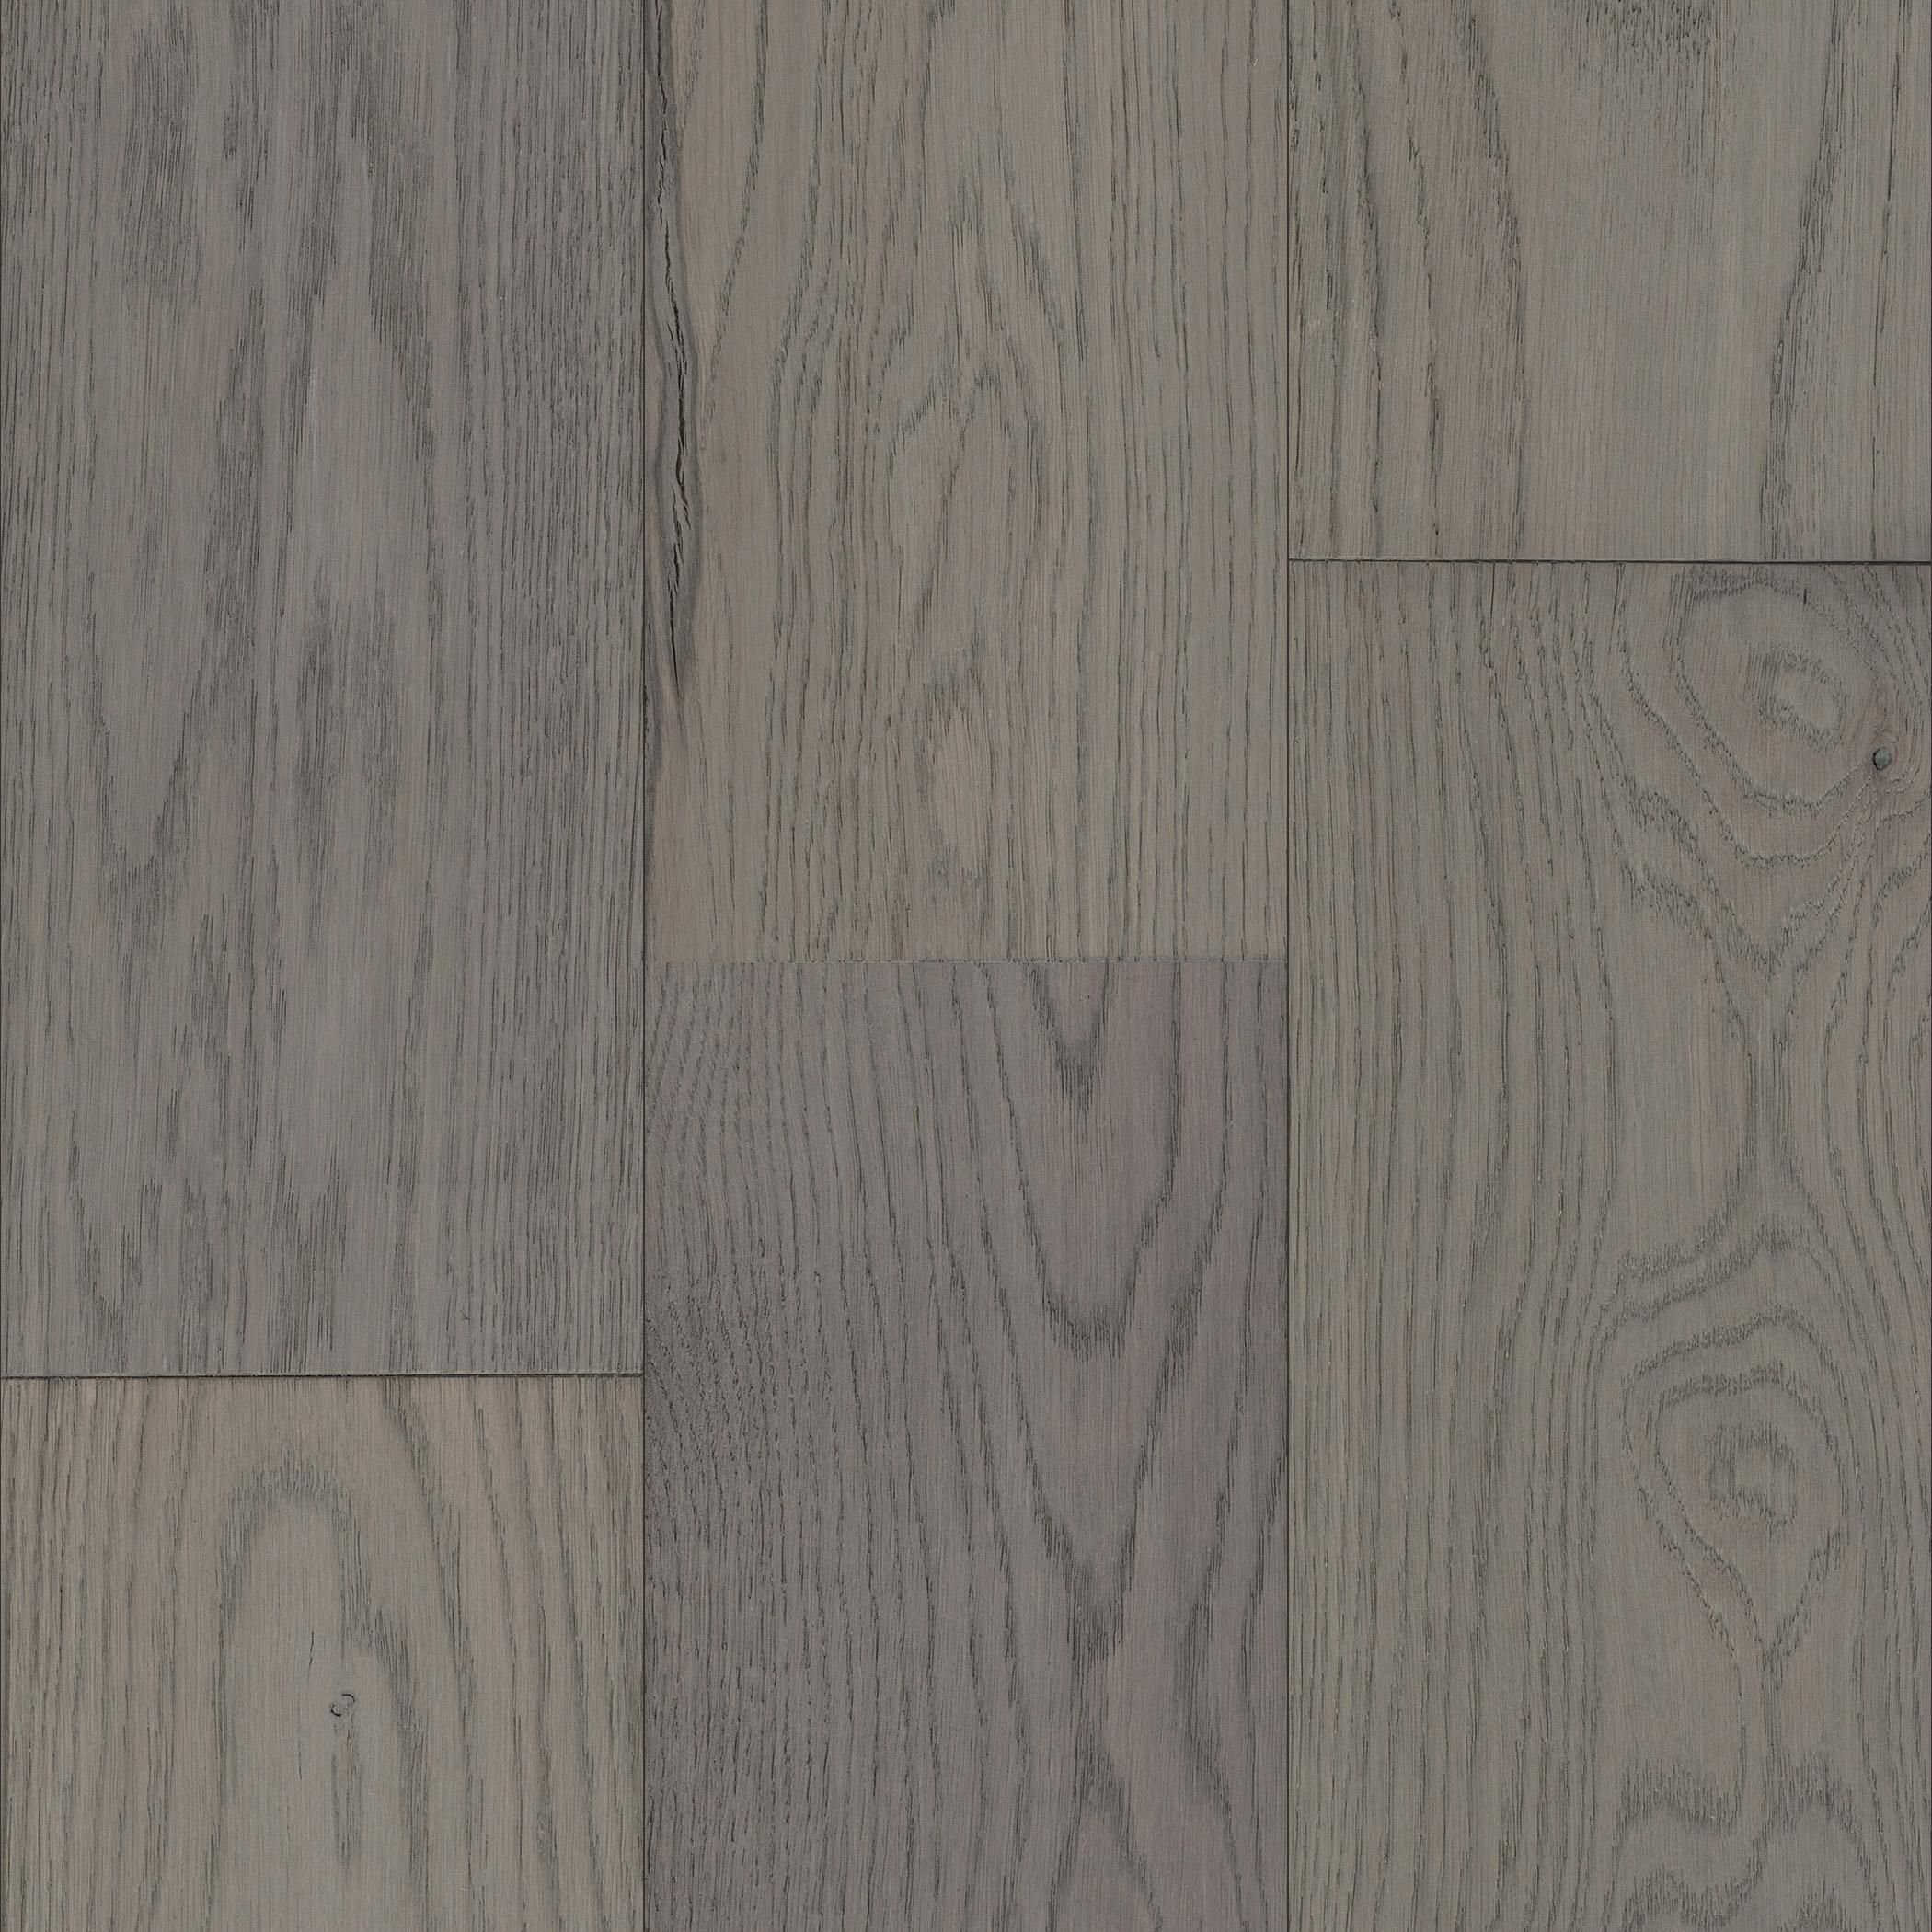 Hardwood Flooring Deals Of Mohawk Weathered Vintage Eastridge Collection Coventry